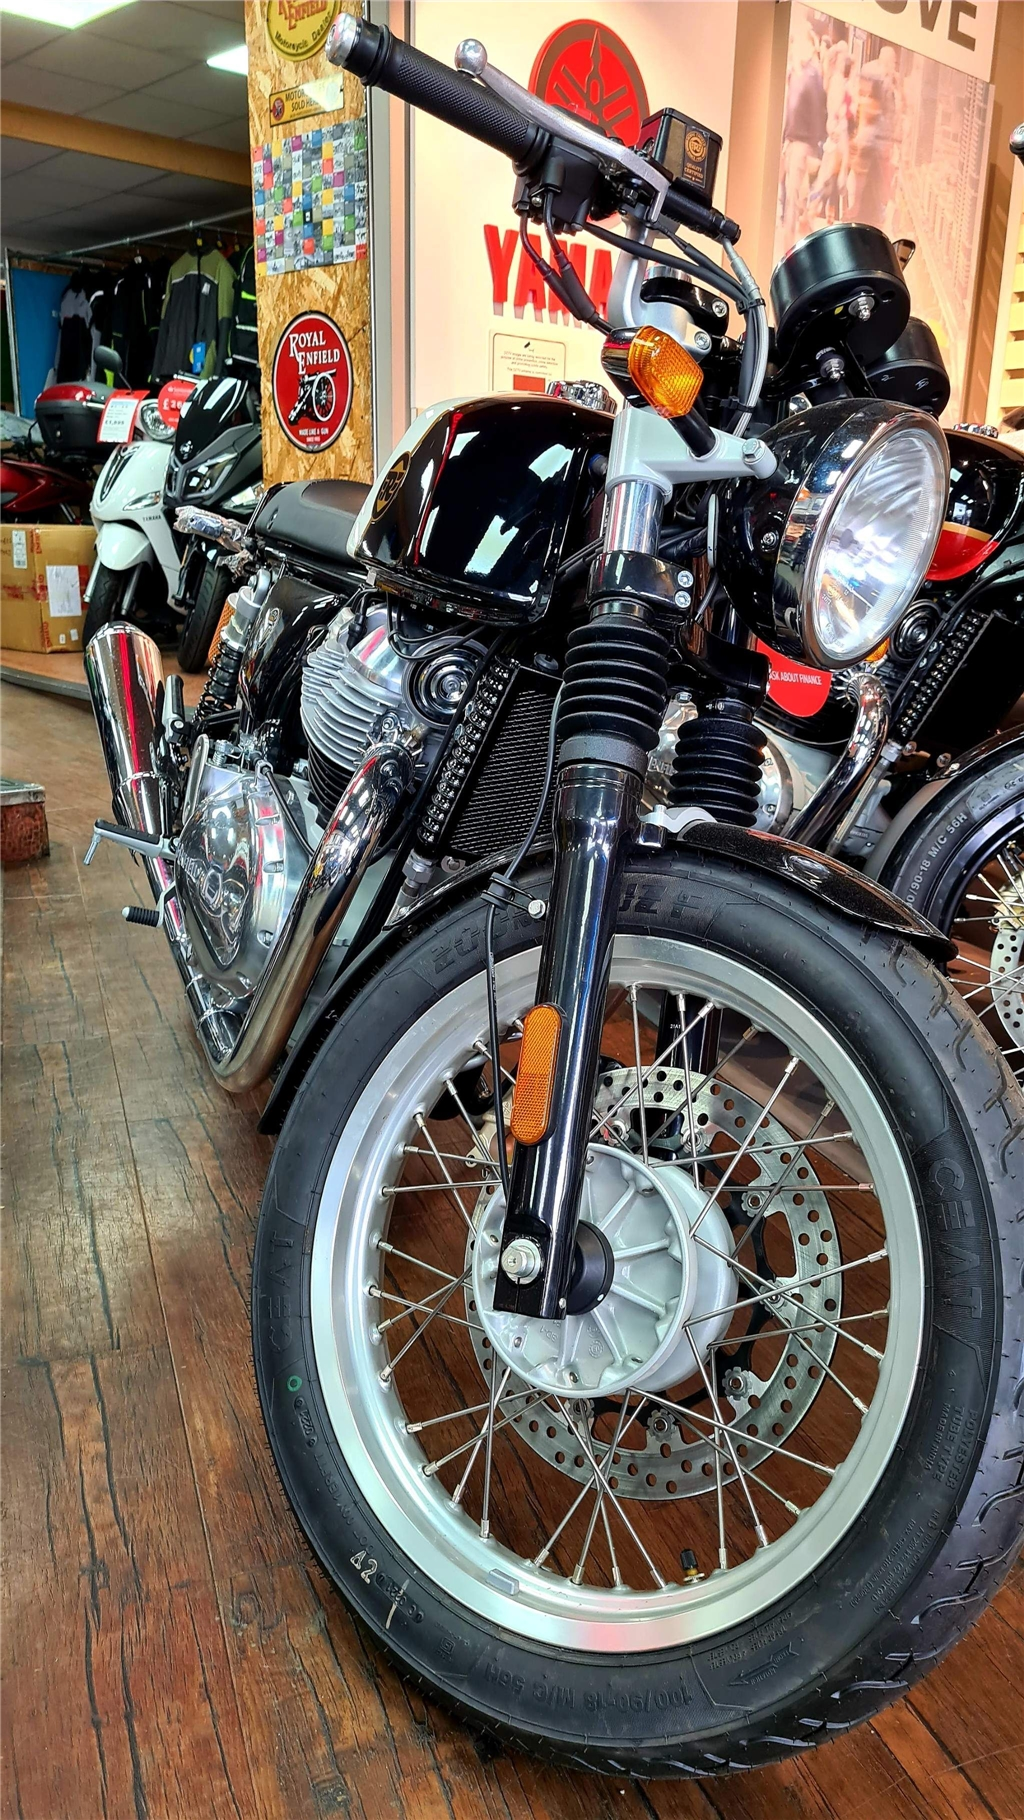 Royal Enfield Continental GT 650 Twin 650 Dual Colour ABS - Image 12